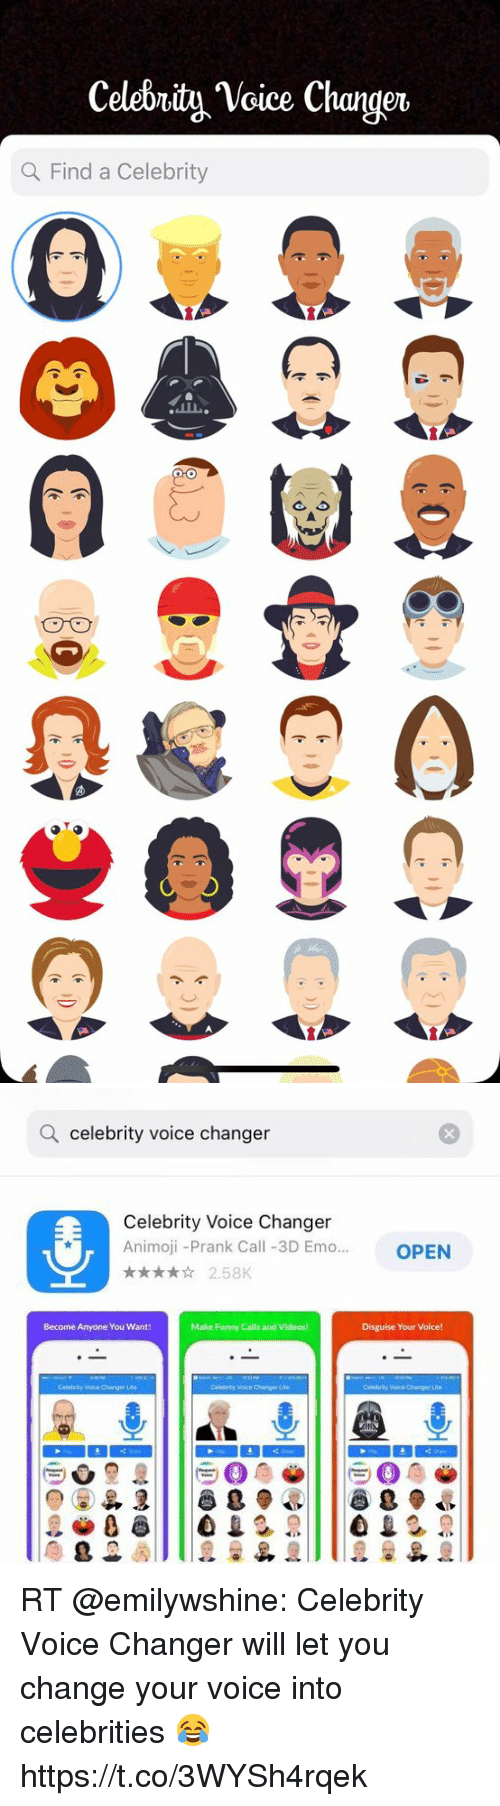 Emo, Funny, and Memes: Celebrity Voice Changen  a Find a Celebrity   Q celebrity voice changer  Celebrity Voice Changer  Animoji -Prank Call-3D Emo...  OPEN  2.58K  Become Anyone You Want  Make Funny Calls and Videos  Disguise Your Voice! RT @emilywshine: Celebrity Voice Changer will let you change your voice into celebrities 😂 https://t.co/3WYSh4rqek